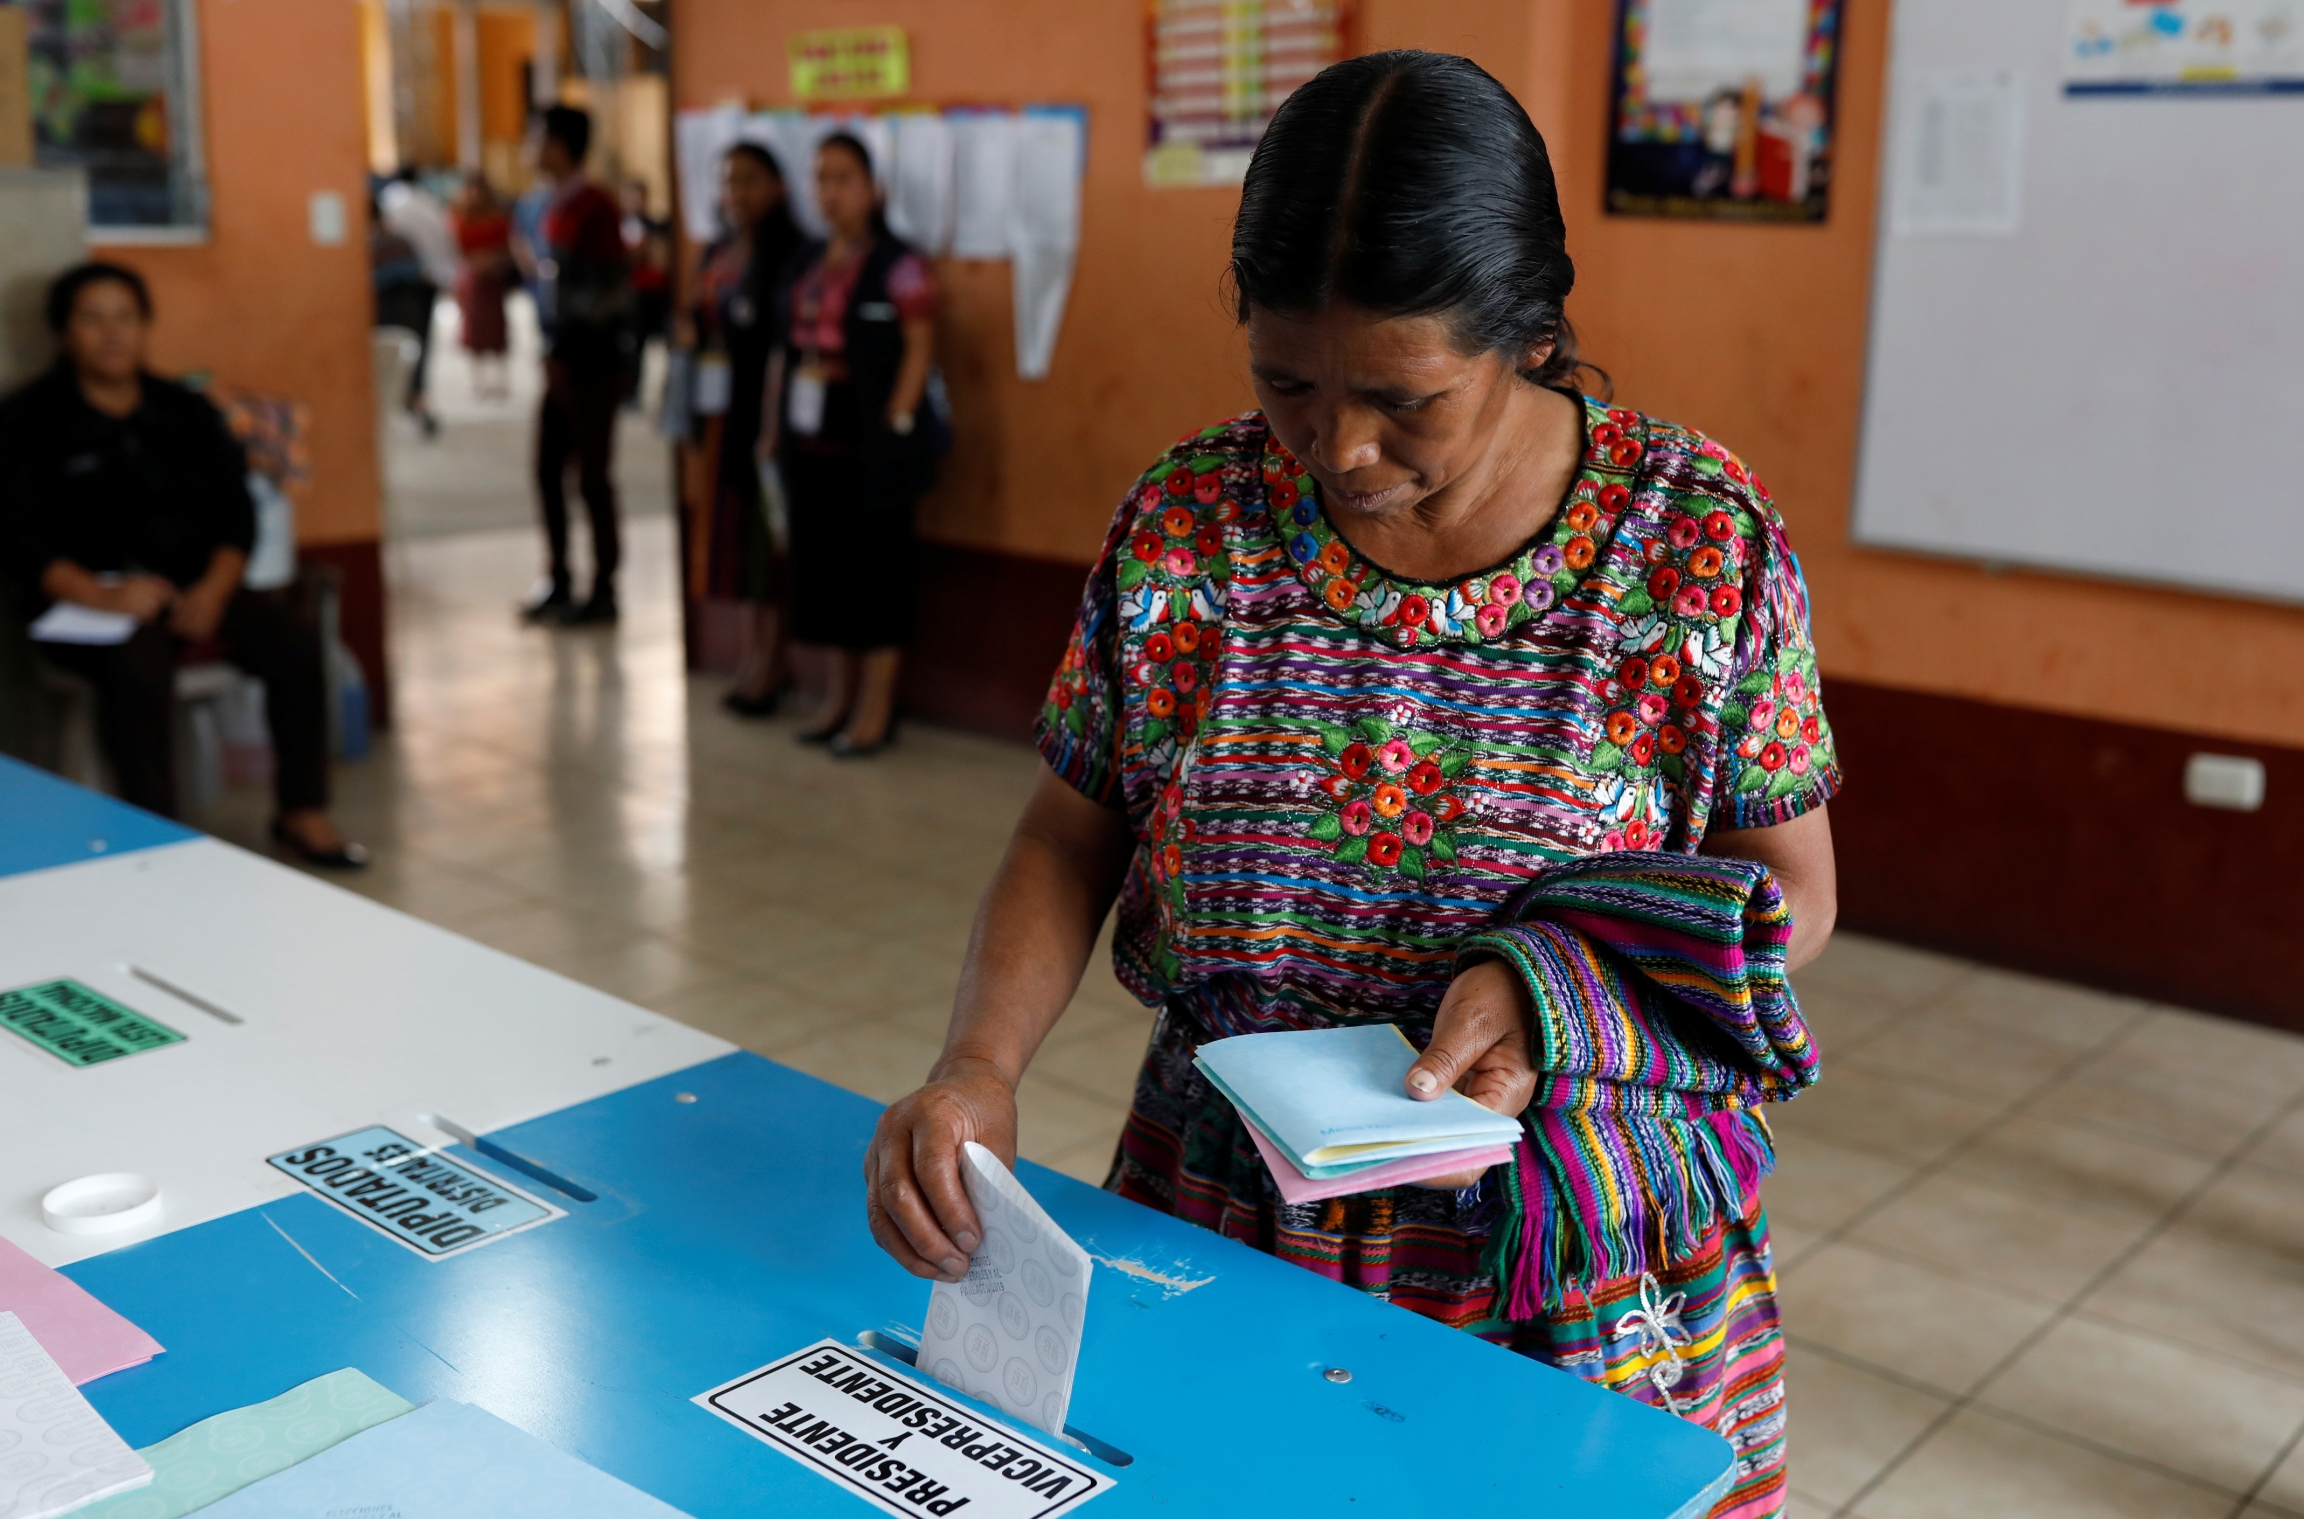 A woman votes at a polling station during the first round of Guatemala's presidential election in San Pedro Sacatepequez, Guatemala, June 16, 2019.